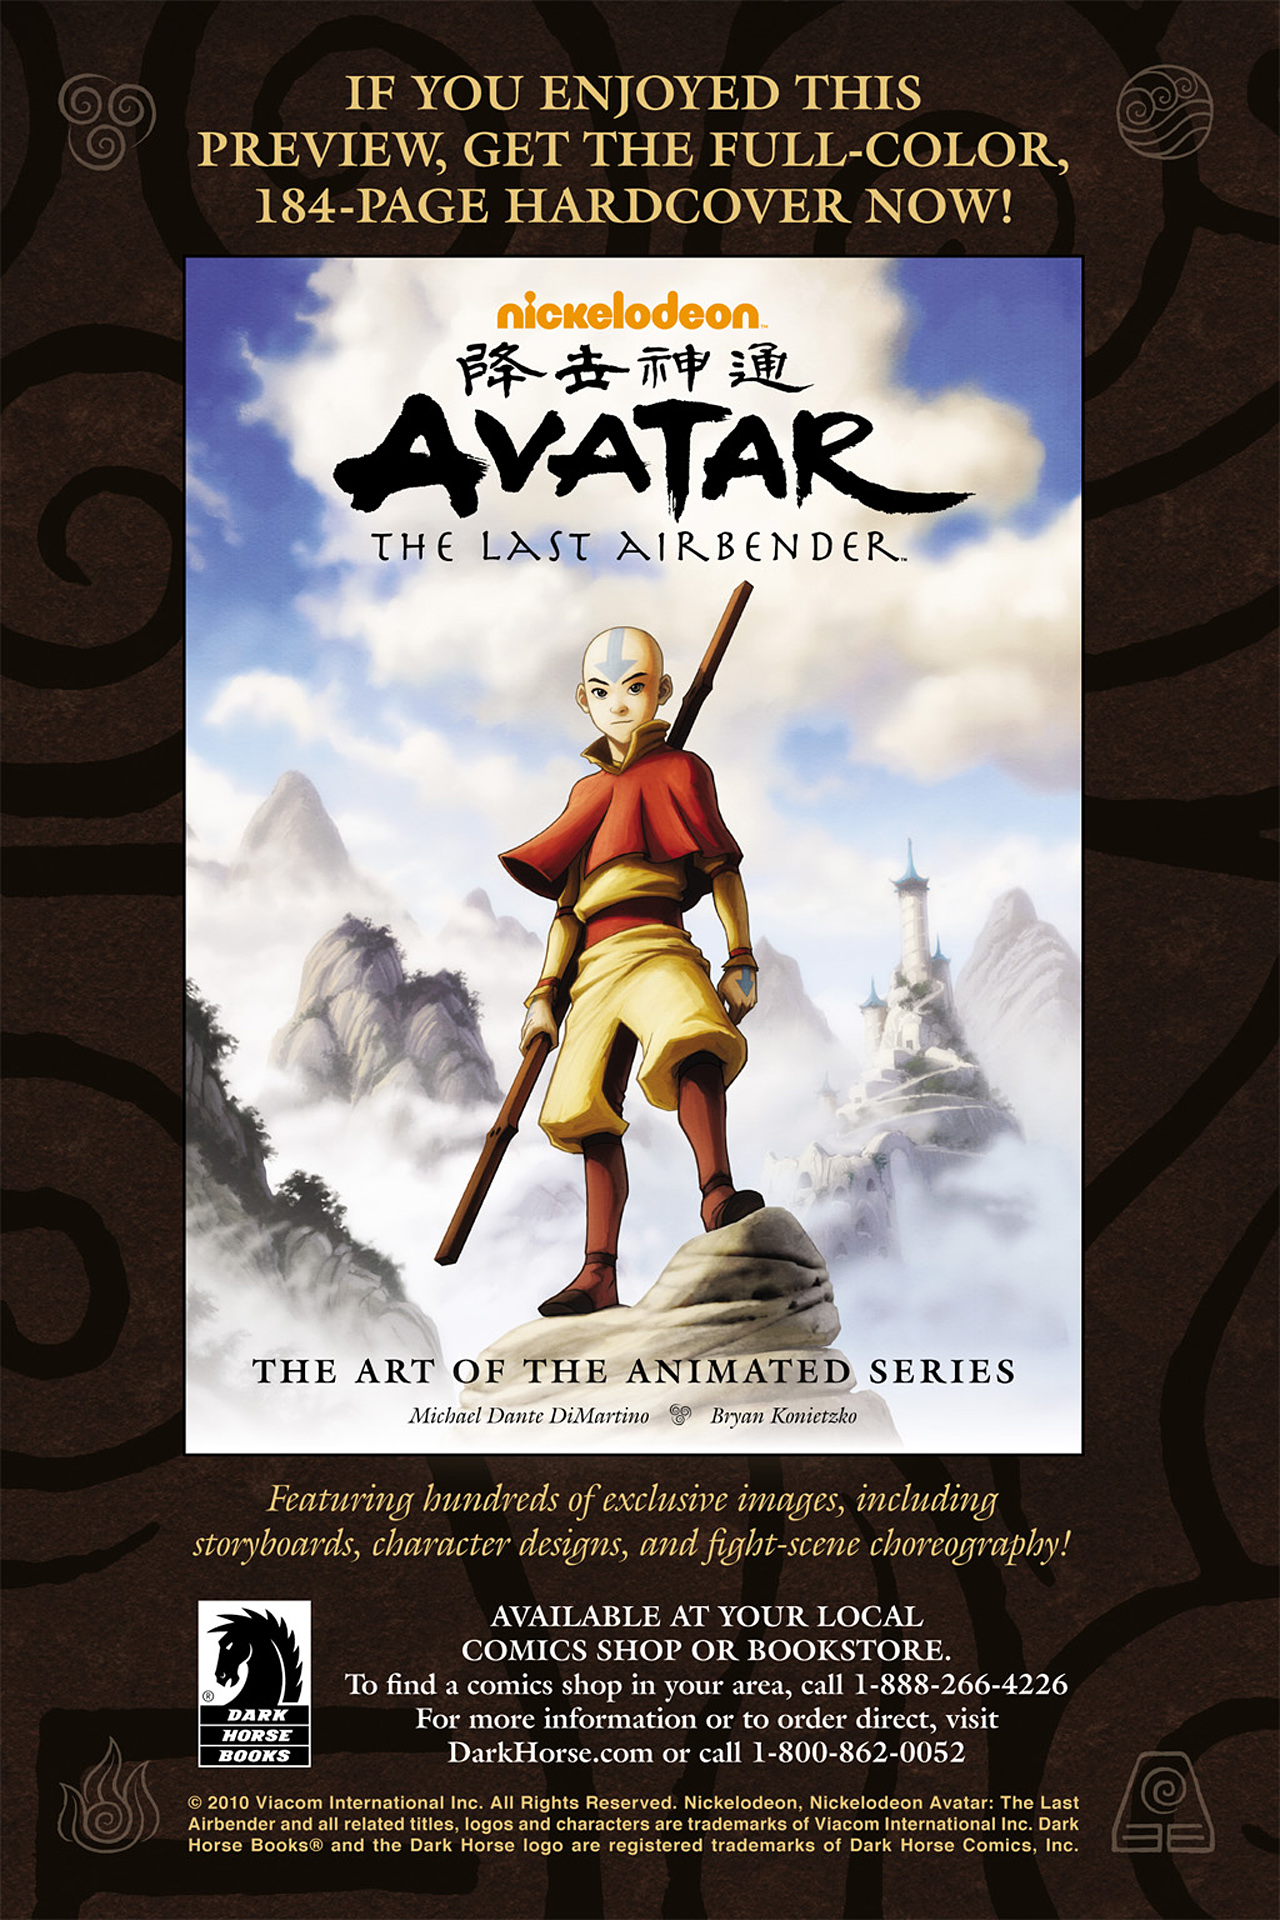 Nickelodeon Avatar: The Last Airbender - The Lost Adventures chap full pic 238